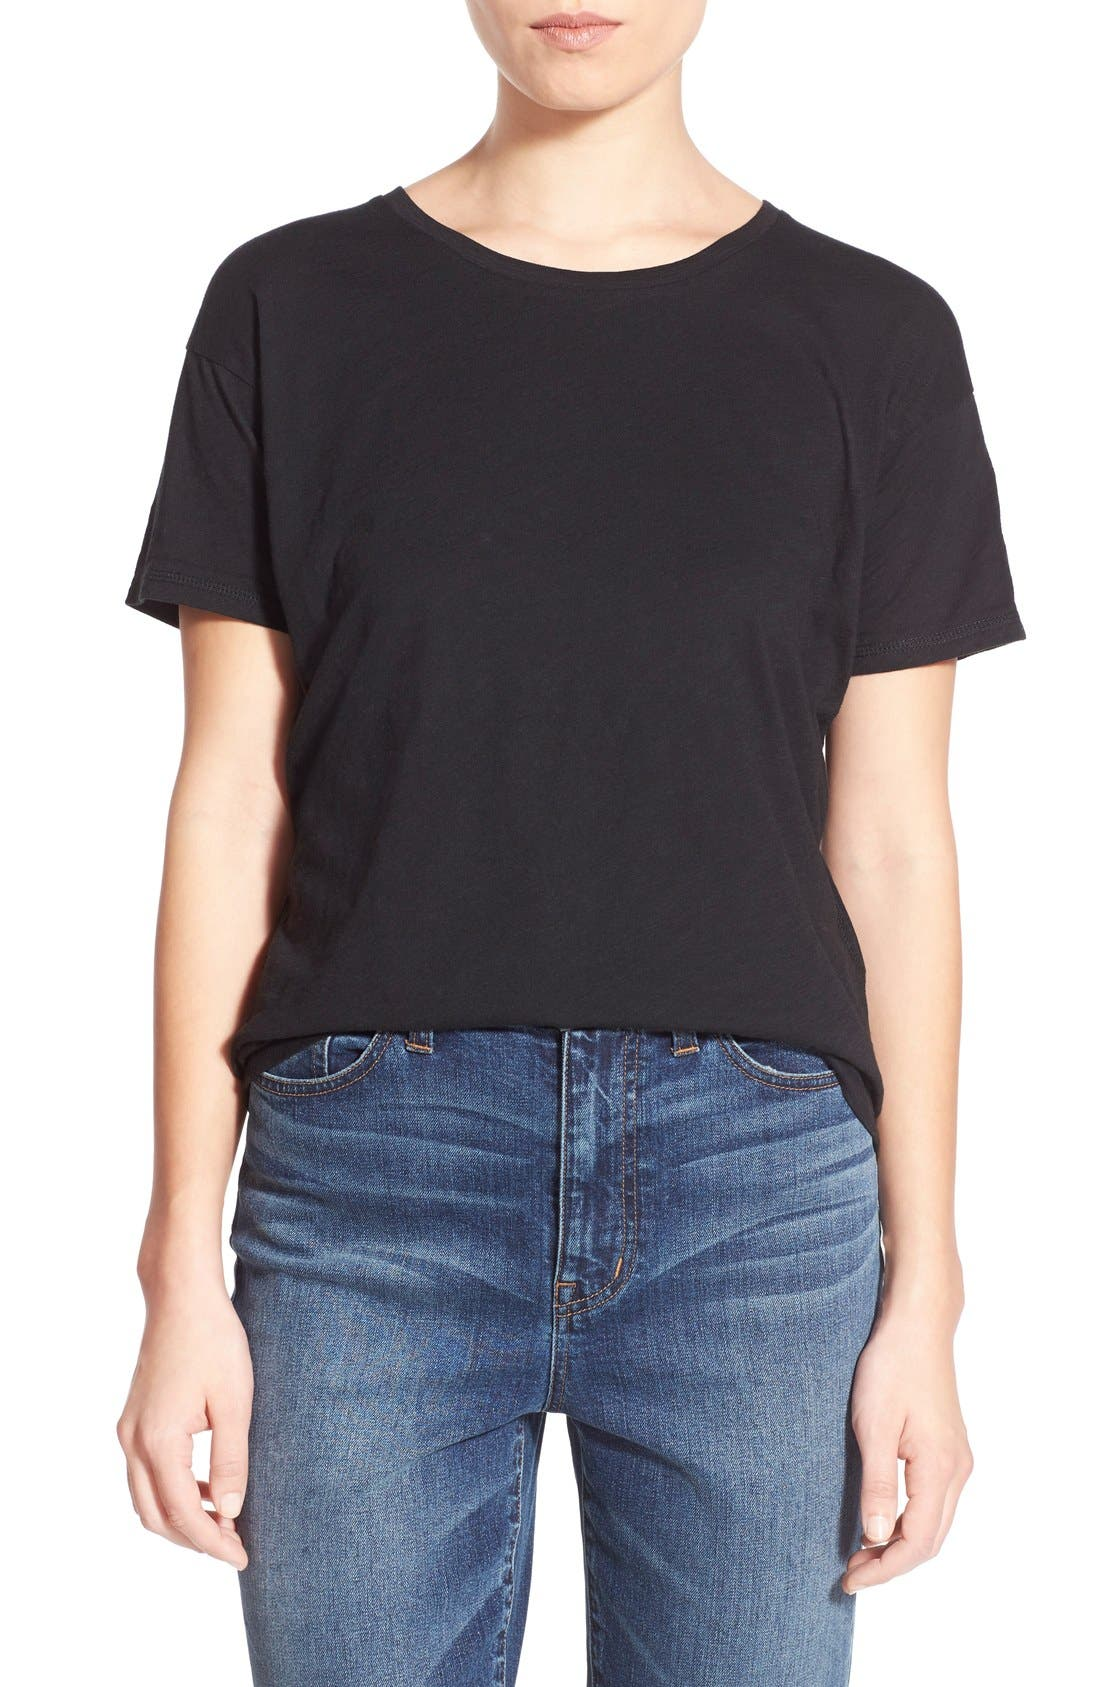 Womens Madewell Tops Blouses Tees Nordstrom Elaine Navy Top Leux Studio S